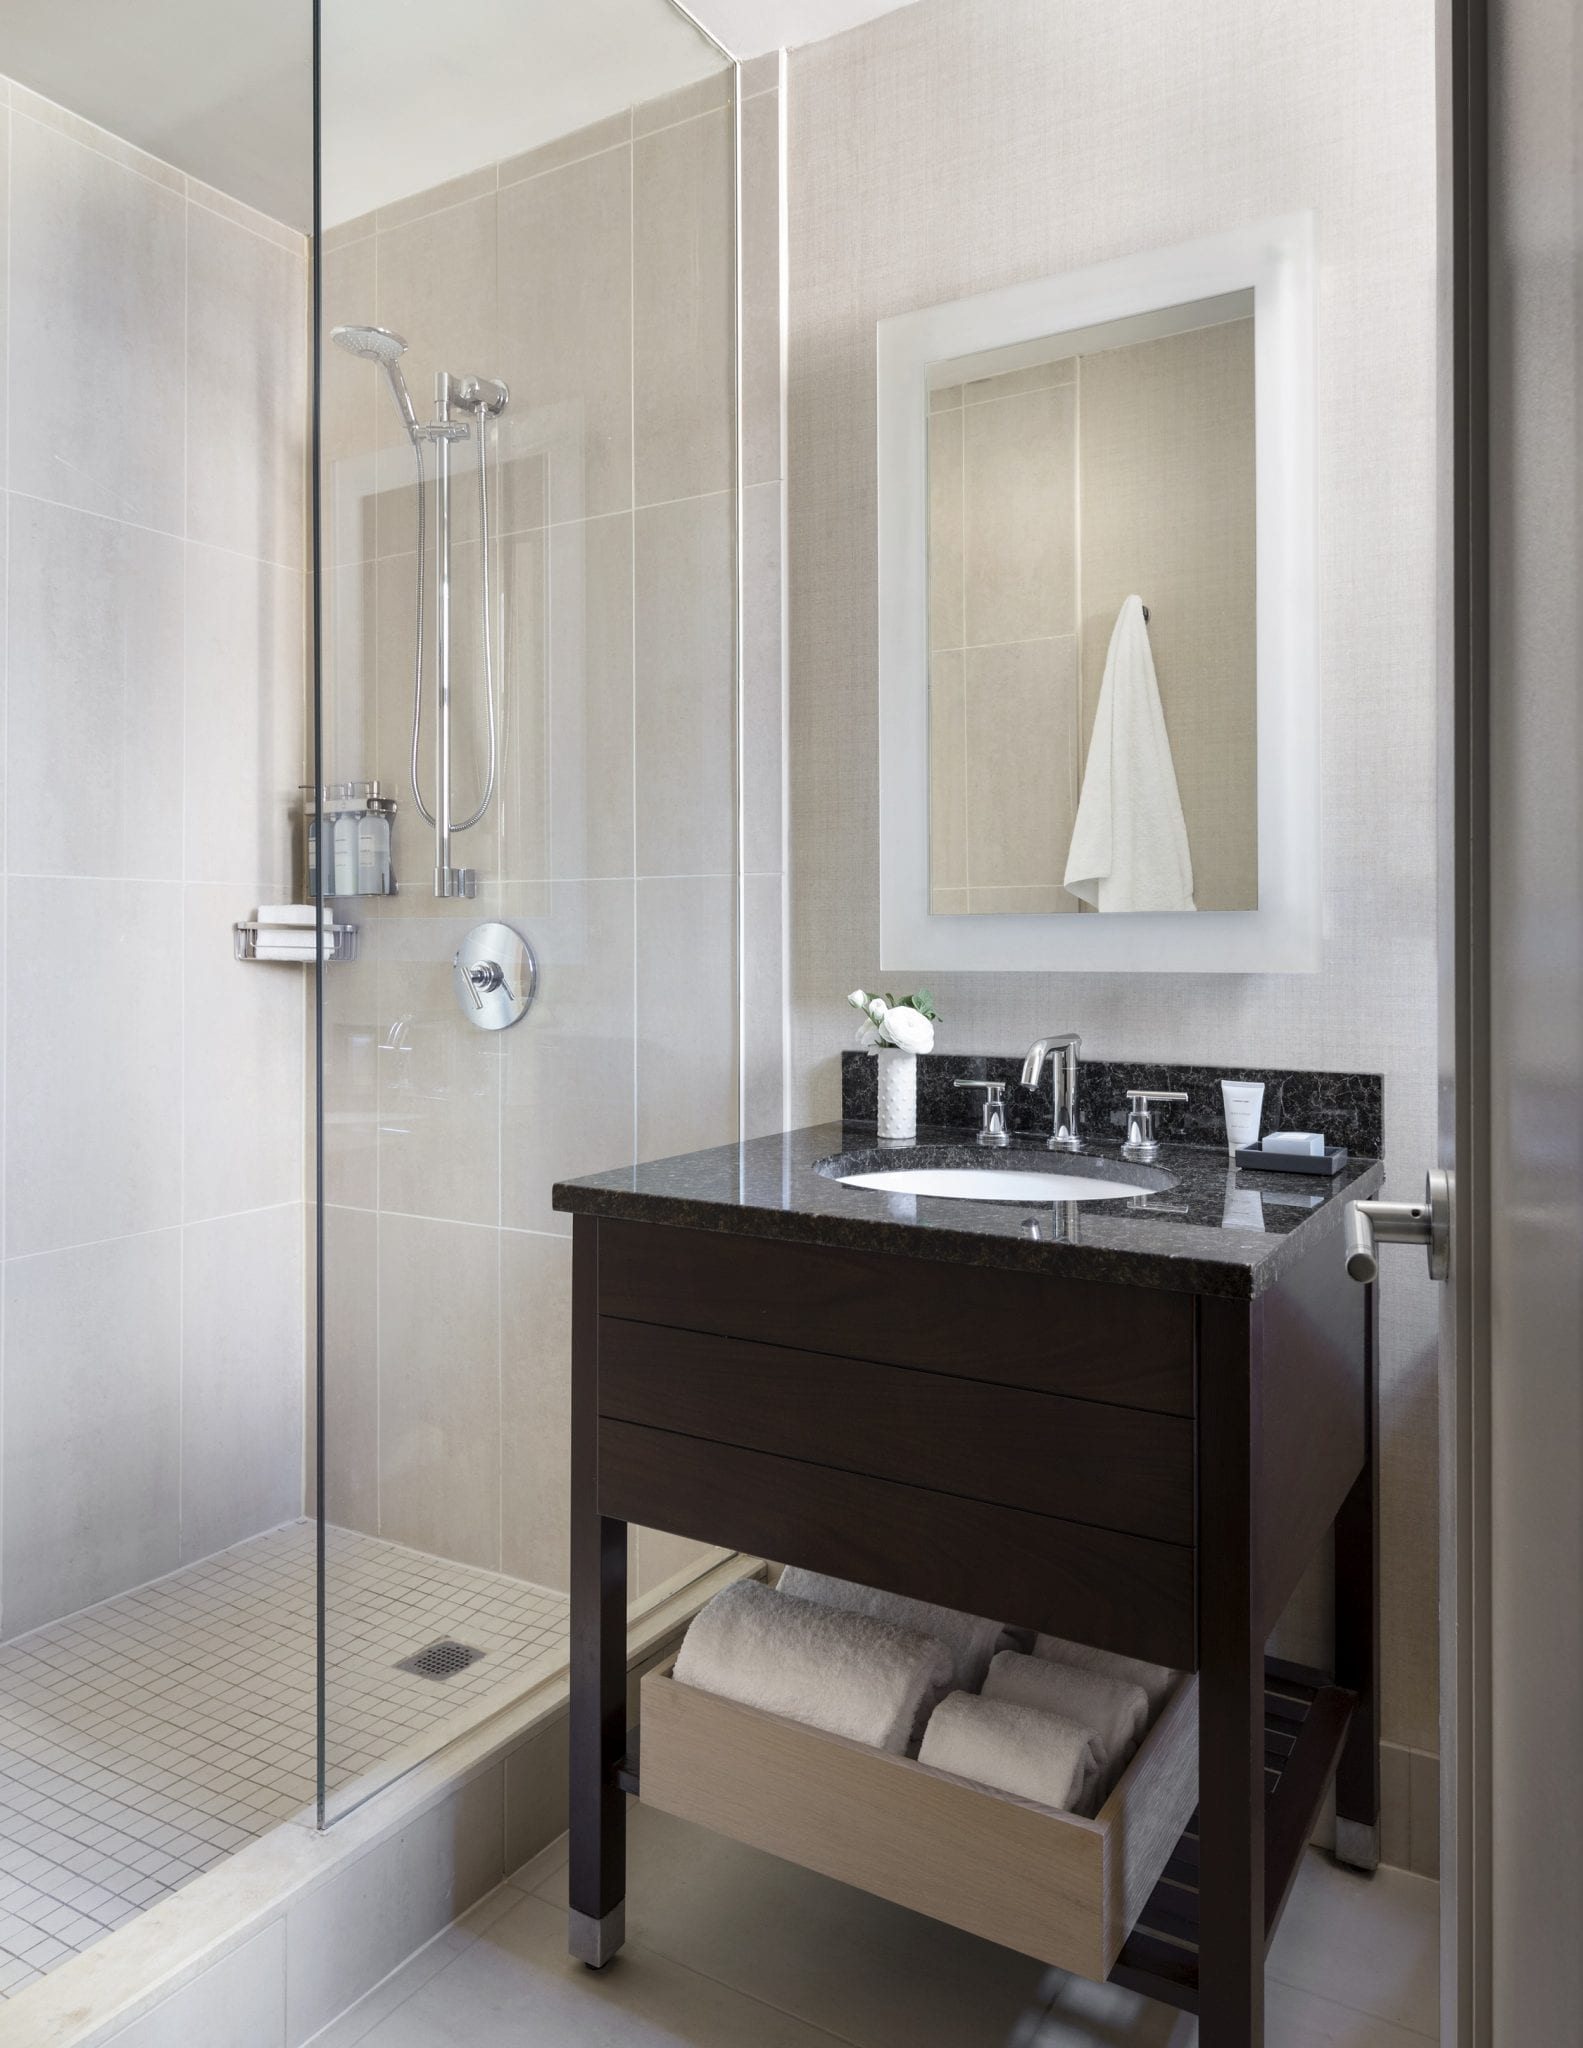 Shelburne Hotel & Suites Guest Bathroom